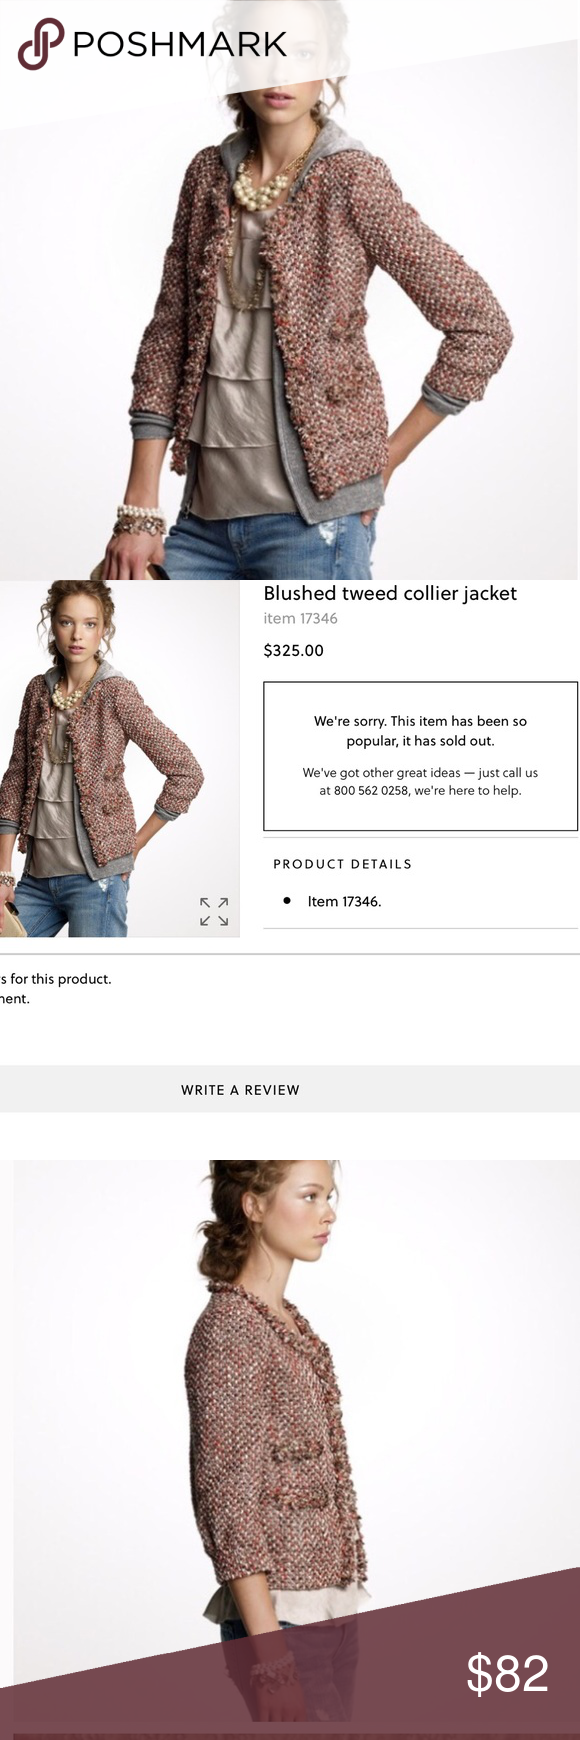 J.crew collection blushed tweed collier jacket Excellent condition J. Crew Jackets & Coats Blazers